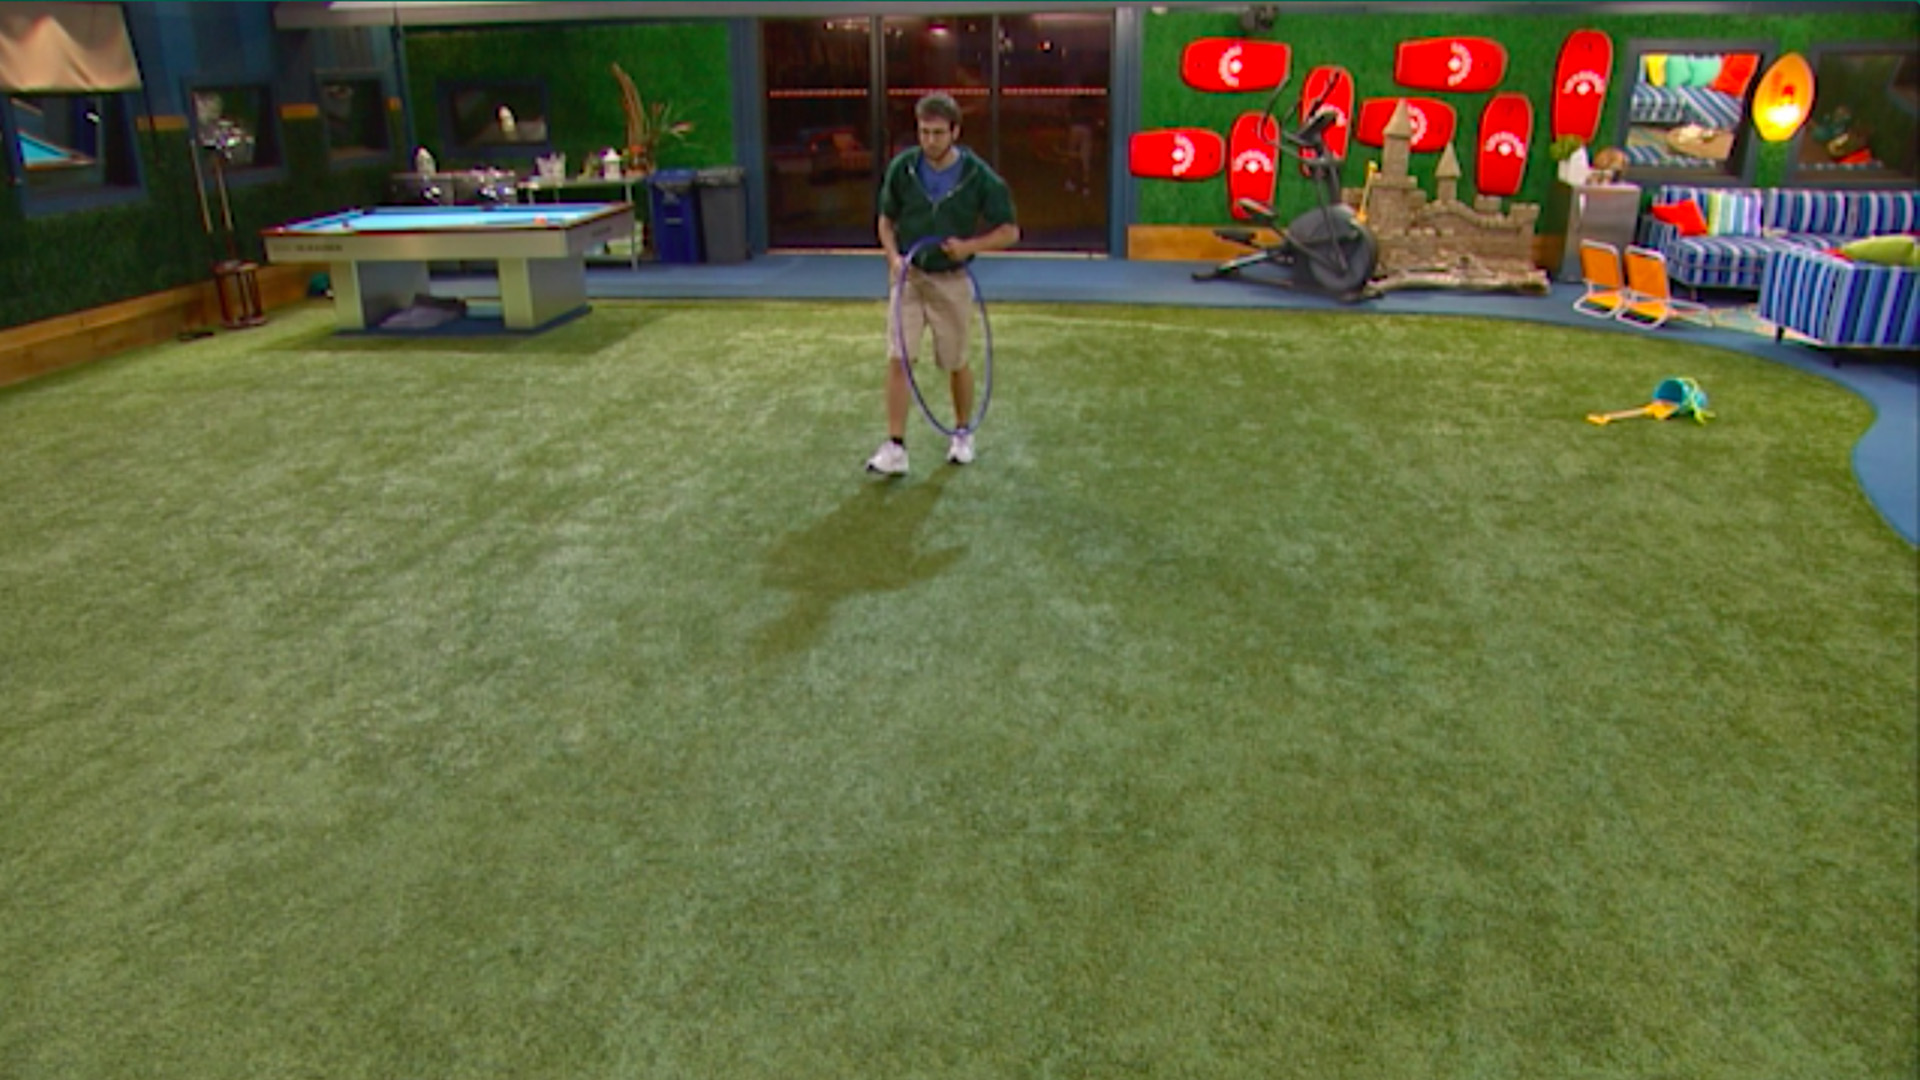 7. Steve plays with a hula hoop alone in the backyard.